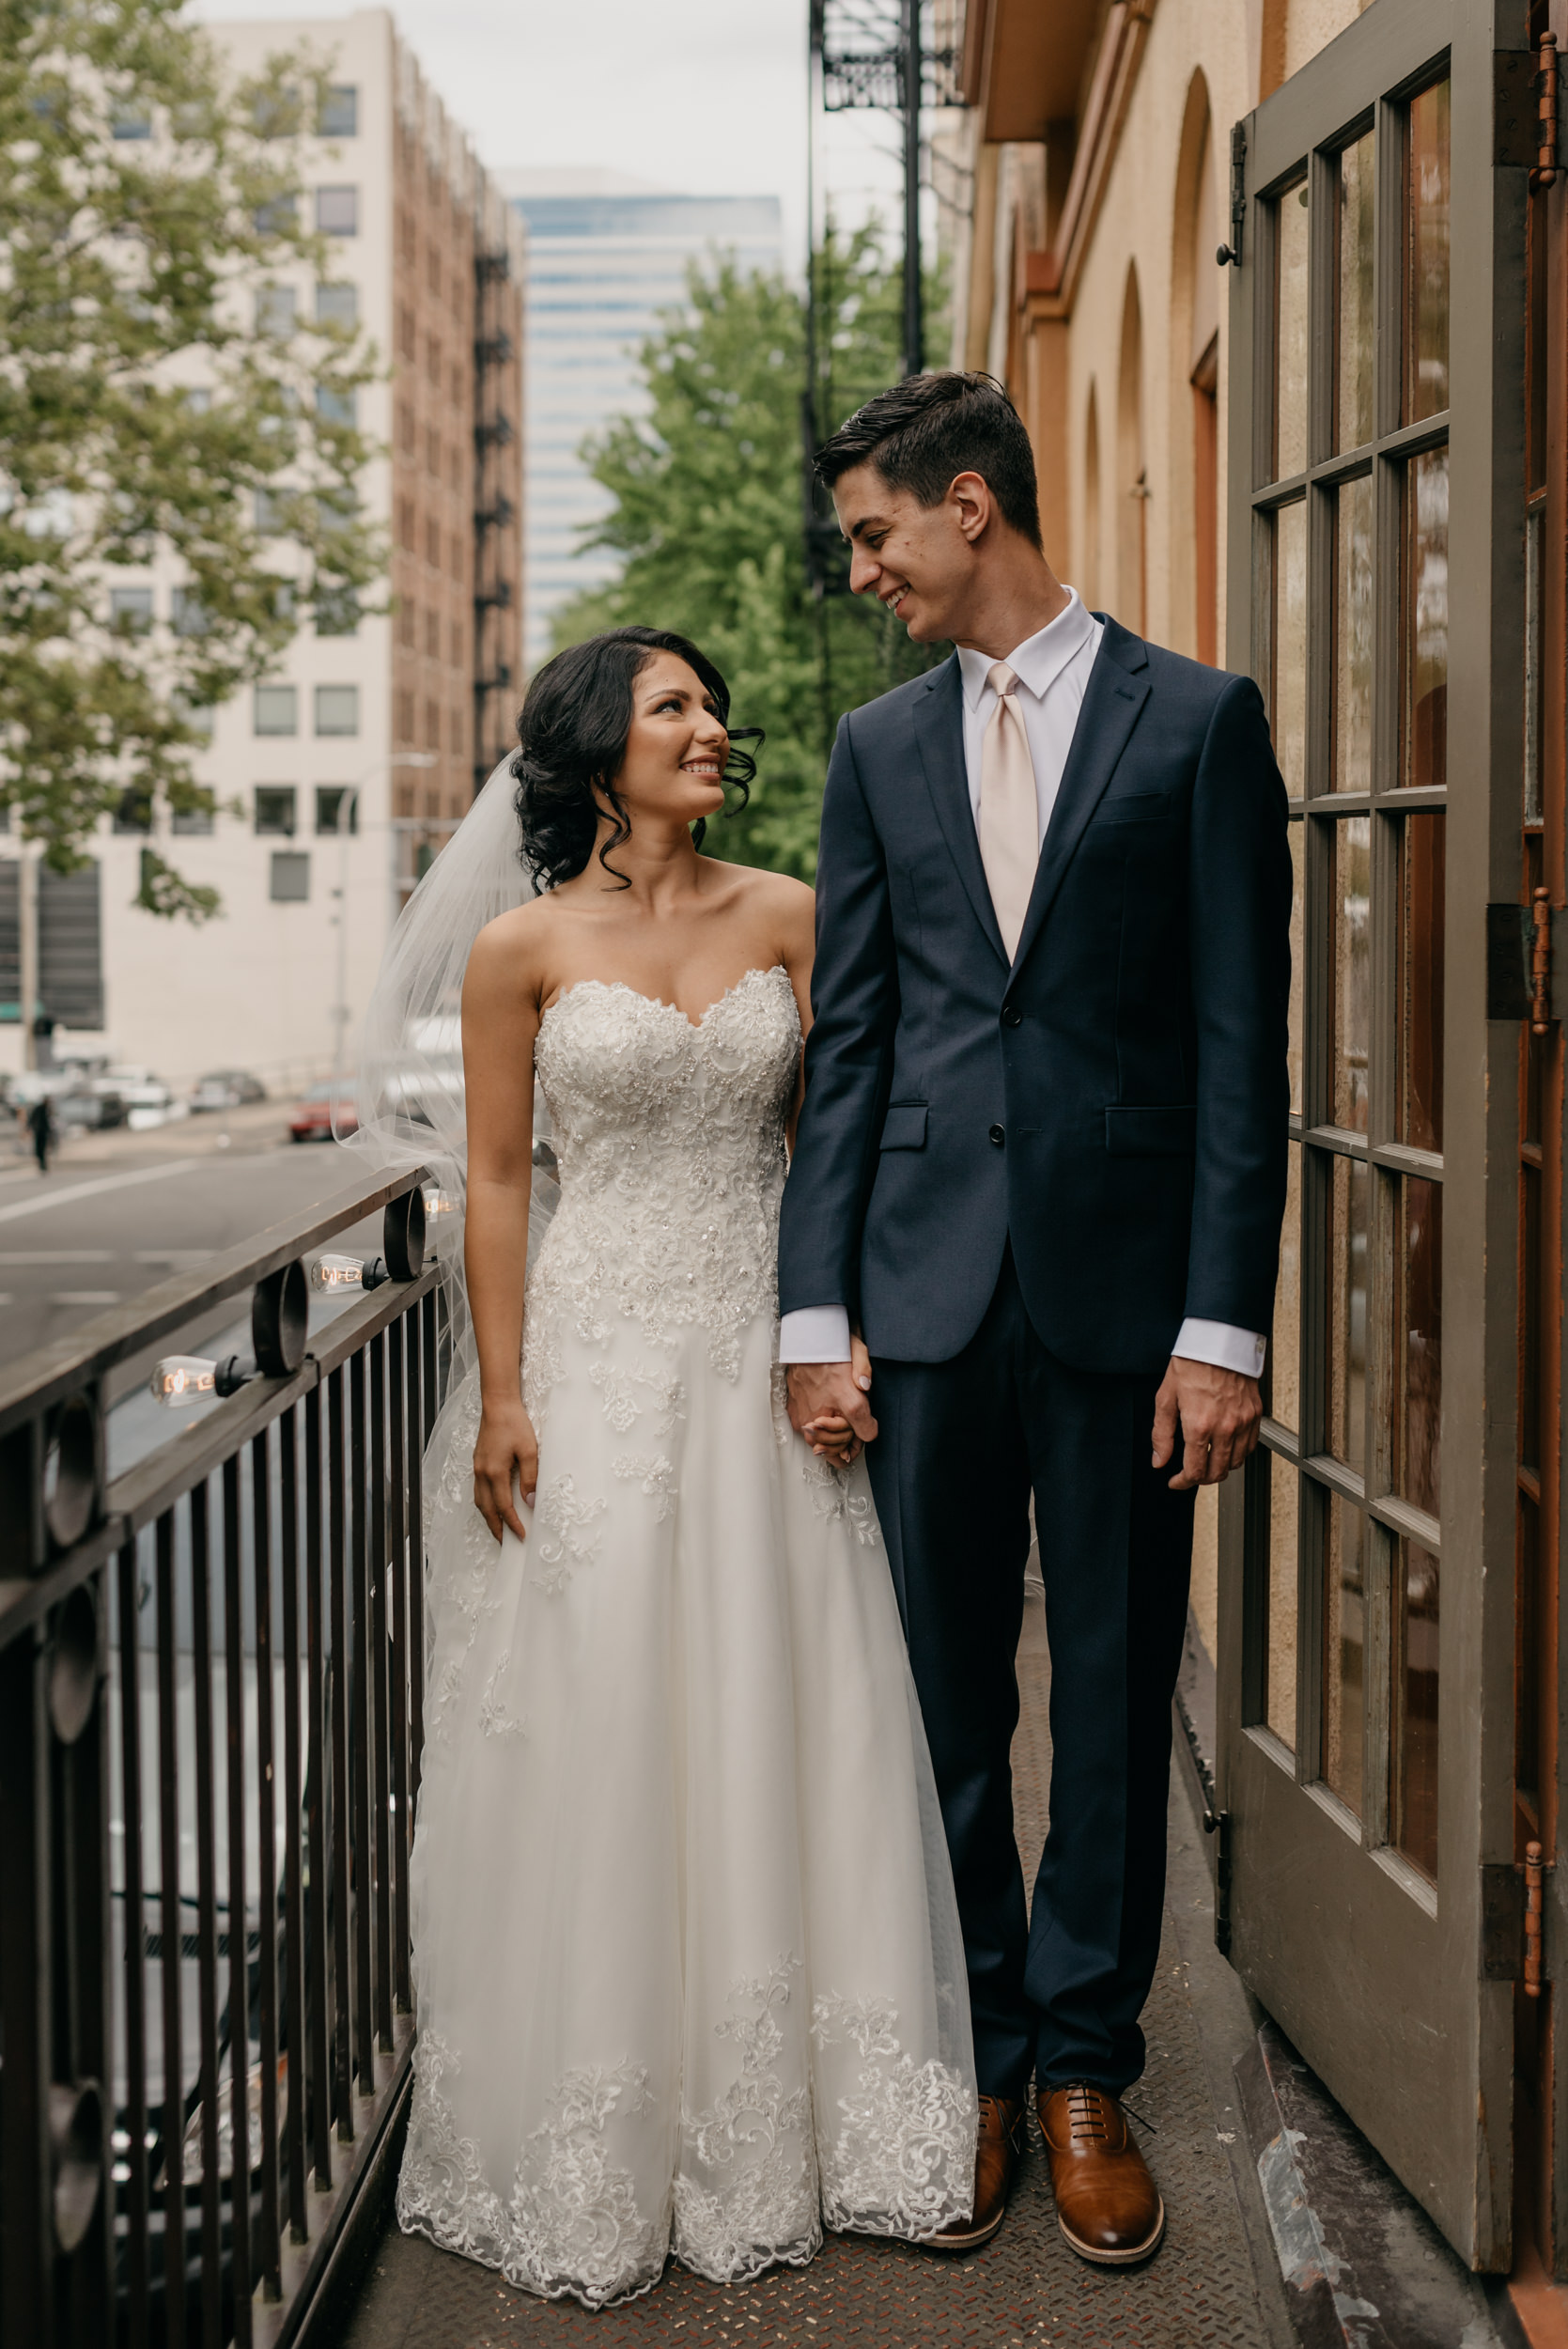 49-bridal-party-downtown-portland-first-look-7502.jpg